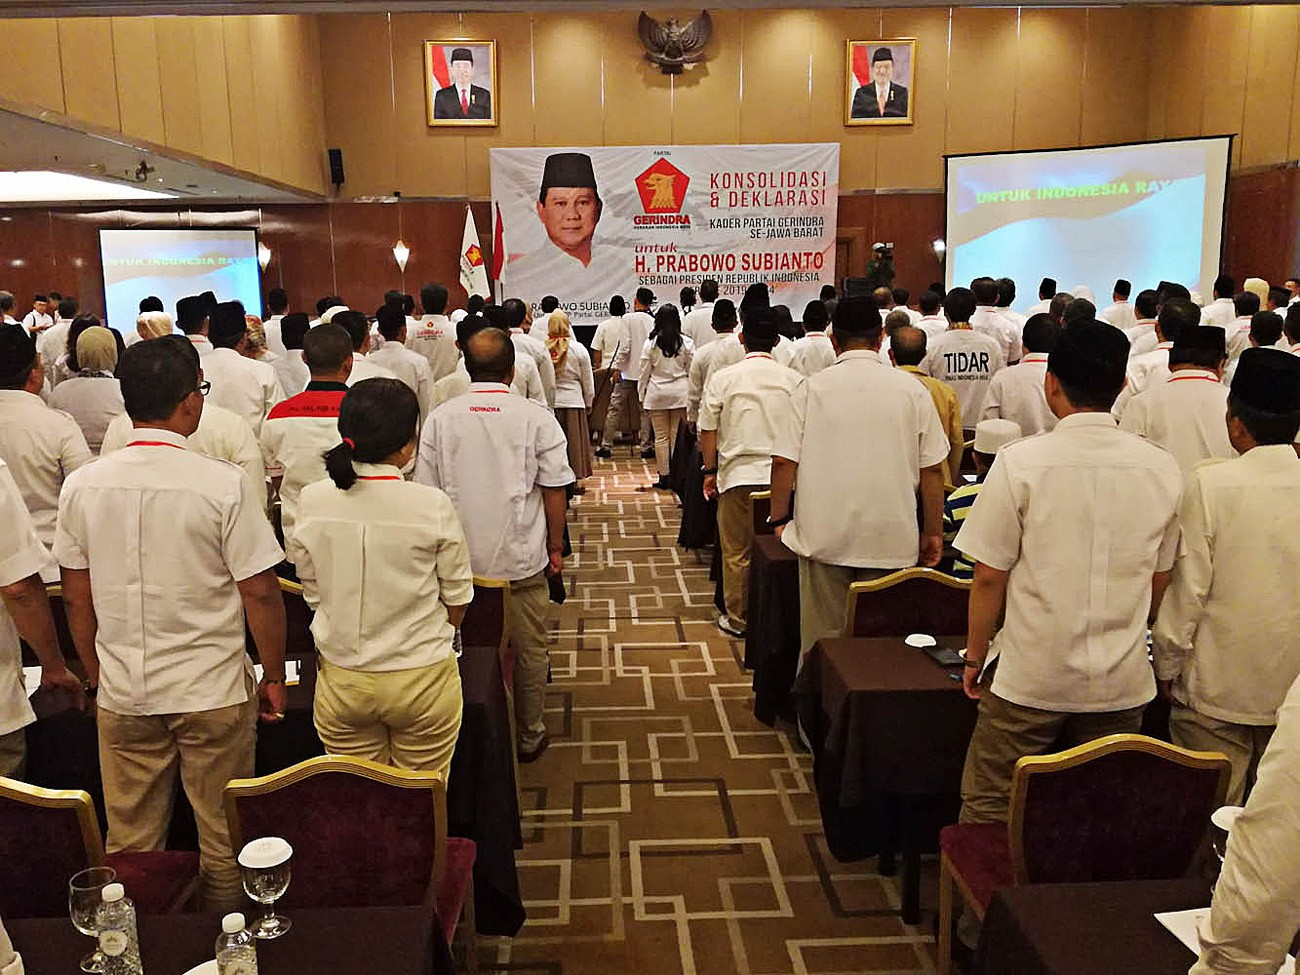 Gerindra officials in West Java declare support for Prabowo